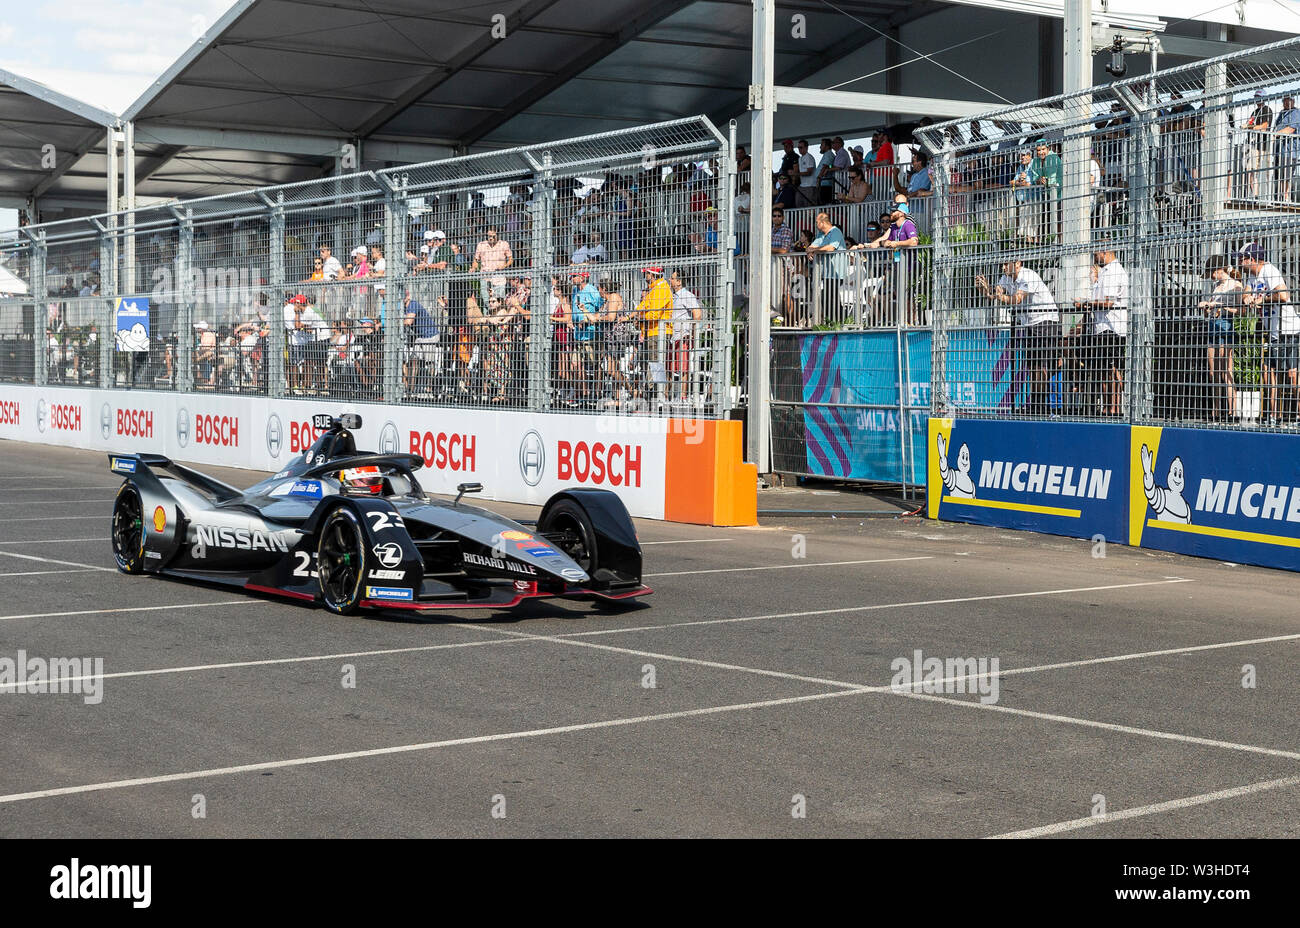 New York, United States. 14th July, 2019. Sebastien Buemi of Nissan team drives electric racing car during New York City E-Prix 2019 Formula E Round 13 at Red Hook Credit: Lev Radin/Pacific Press/Alamy Live News - Stock Image